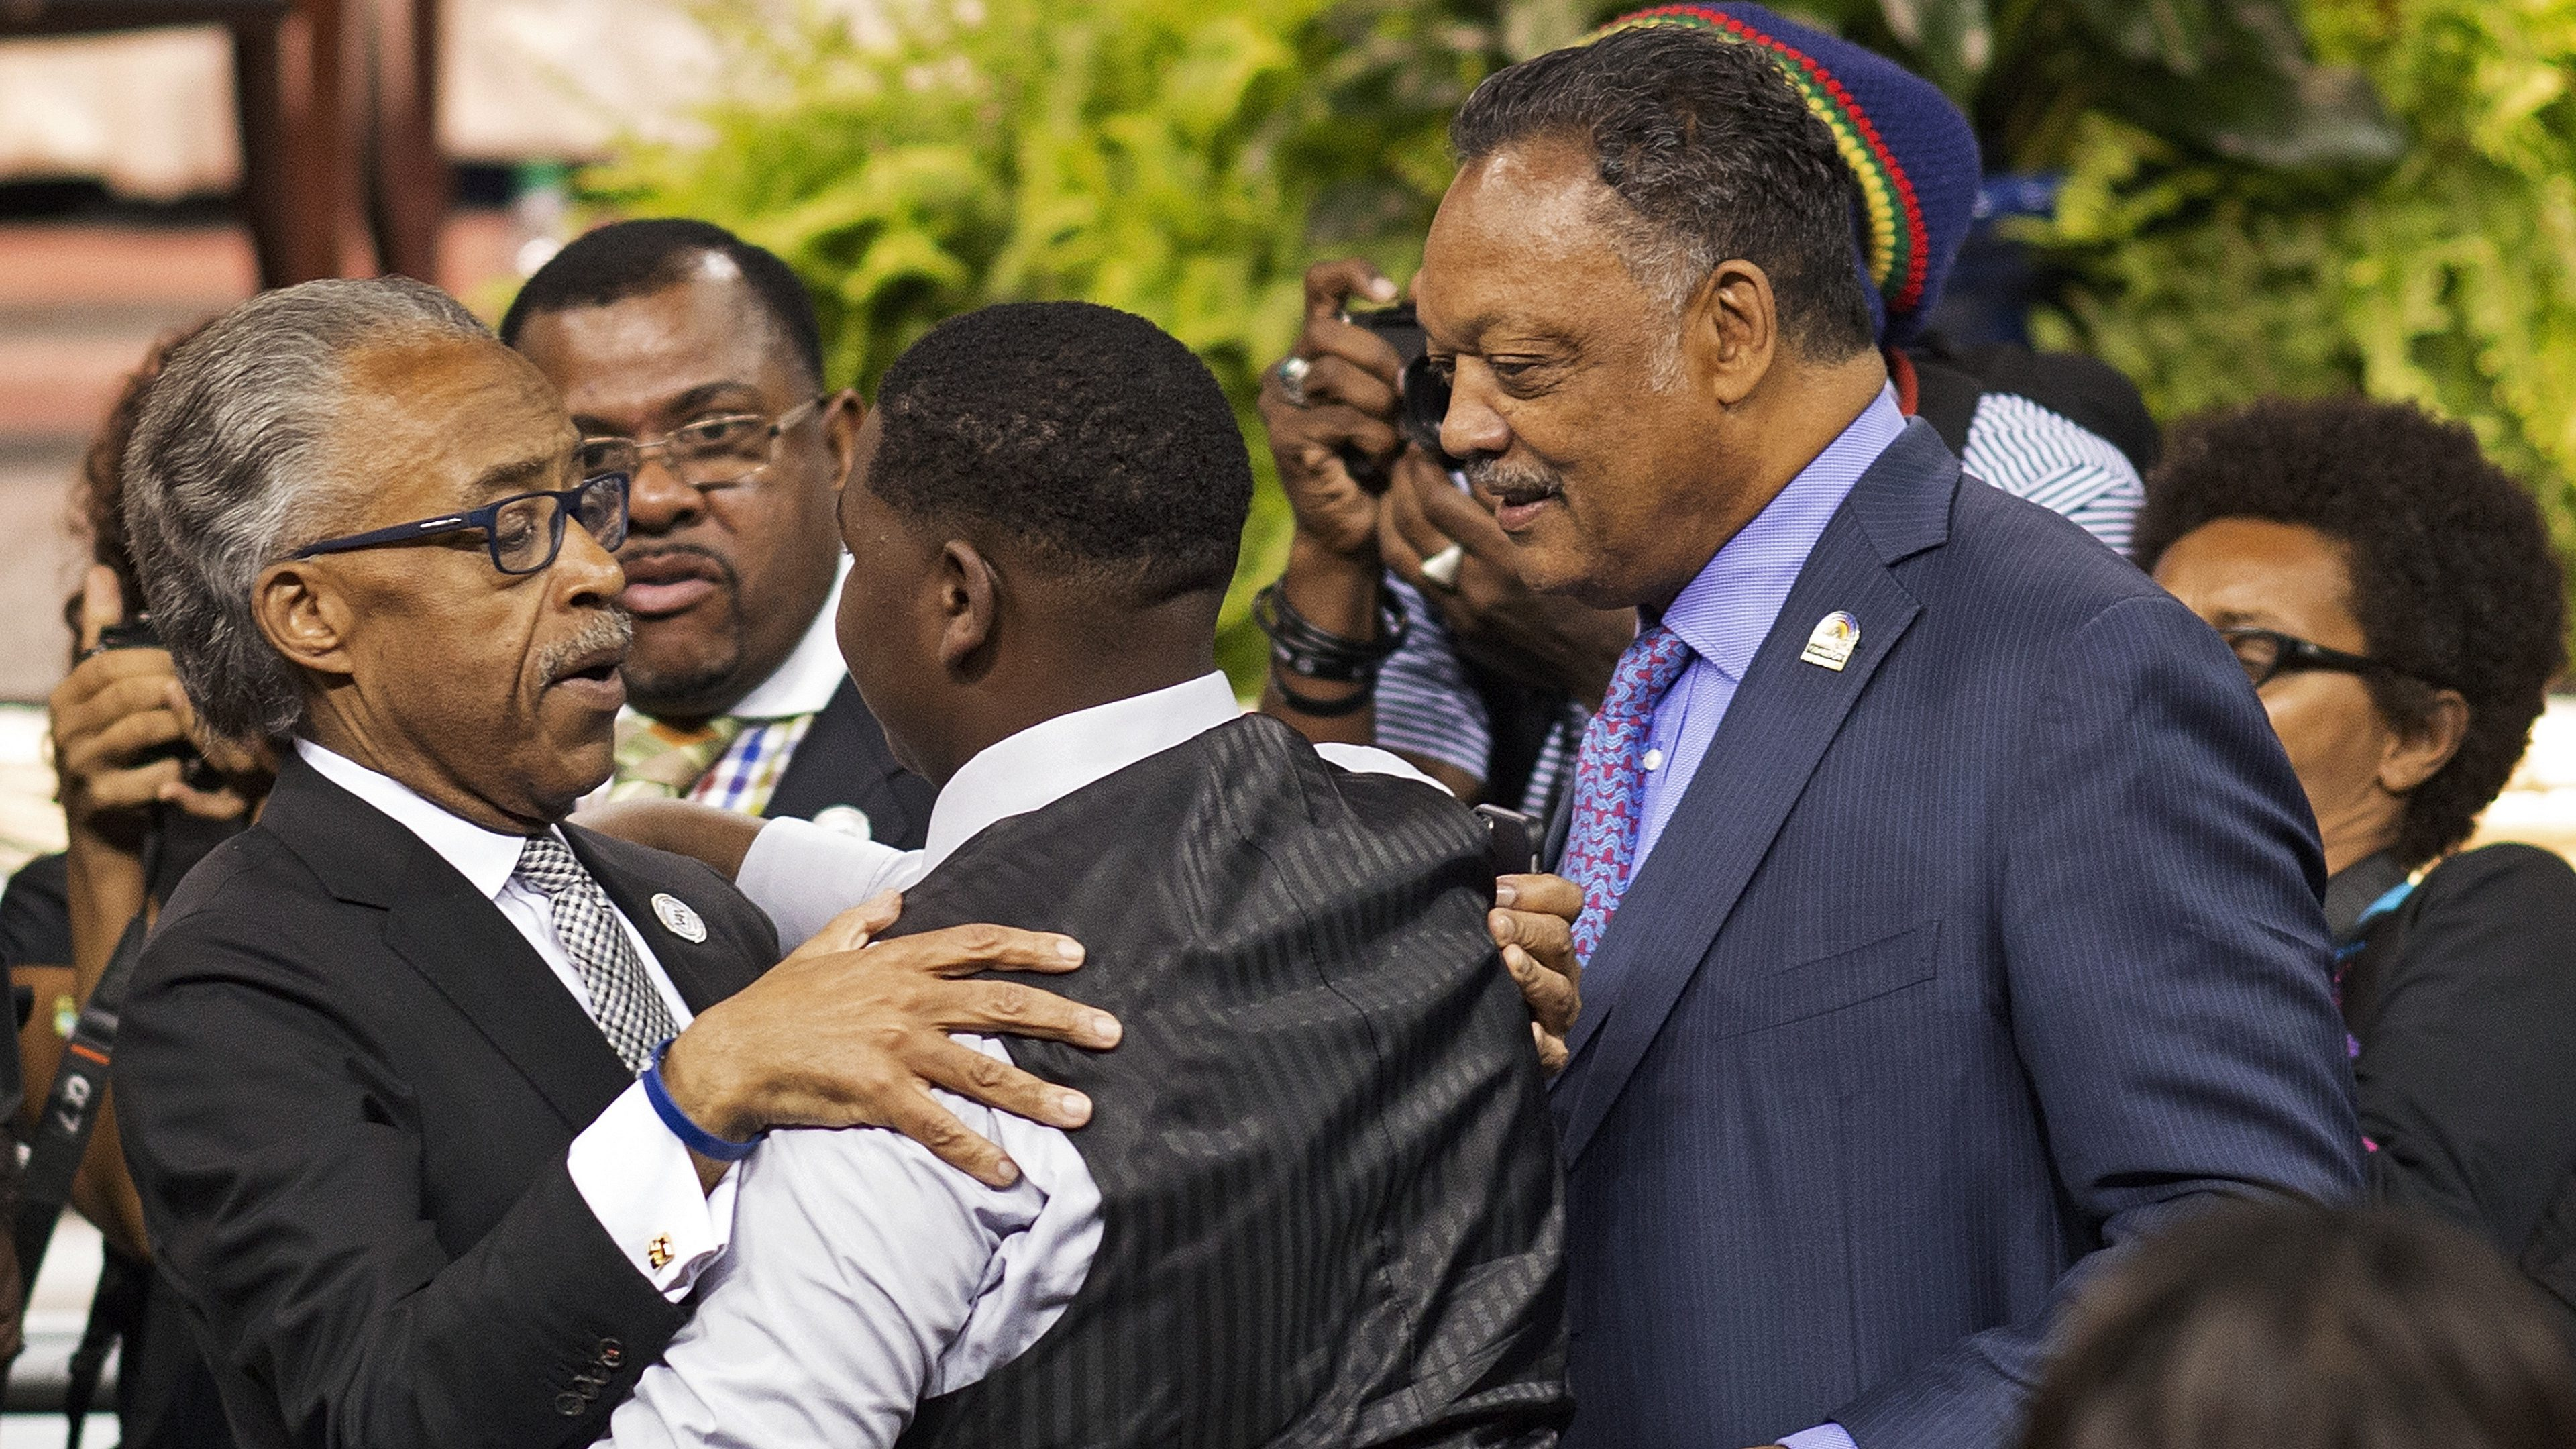 Civil rights leaders Rev. Al Sharpton, left, and Rev. Jesse Jackson, right, comfort Cameron Sterling, the son of Alton Sterling, during his father's funeral service at the F.G. Clark Activity Center in Baton Rouge, La., Friday, July 15, 2016. Alton Sterling was shot July 5 outside a Baton Rouge convenience store in an encounter with police that was caught on video.  (AP Photo/Max Becherer)